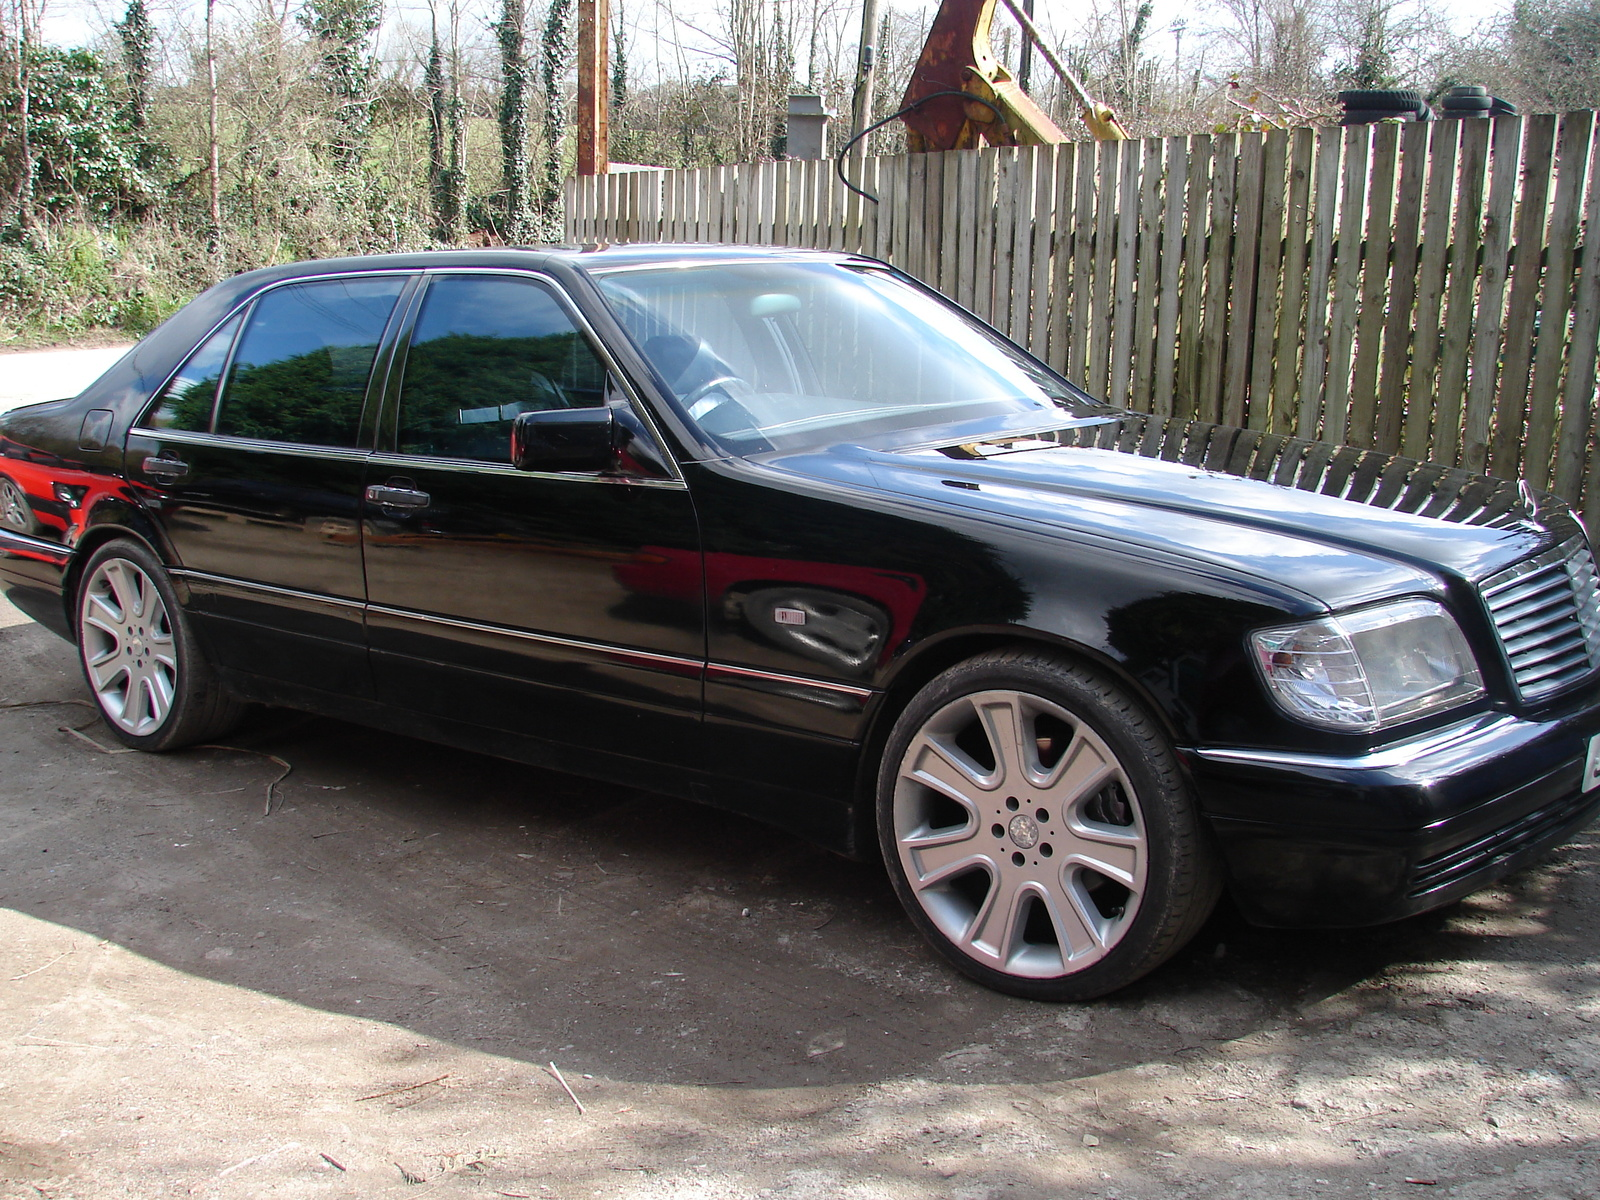 1994 mercedes benz s class pictures cargurus for 2001 mercedes benz s500 specs